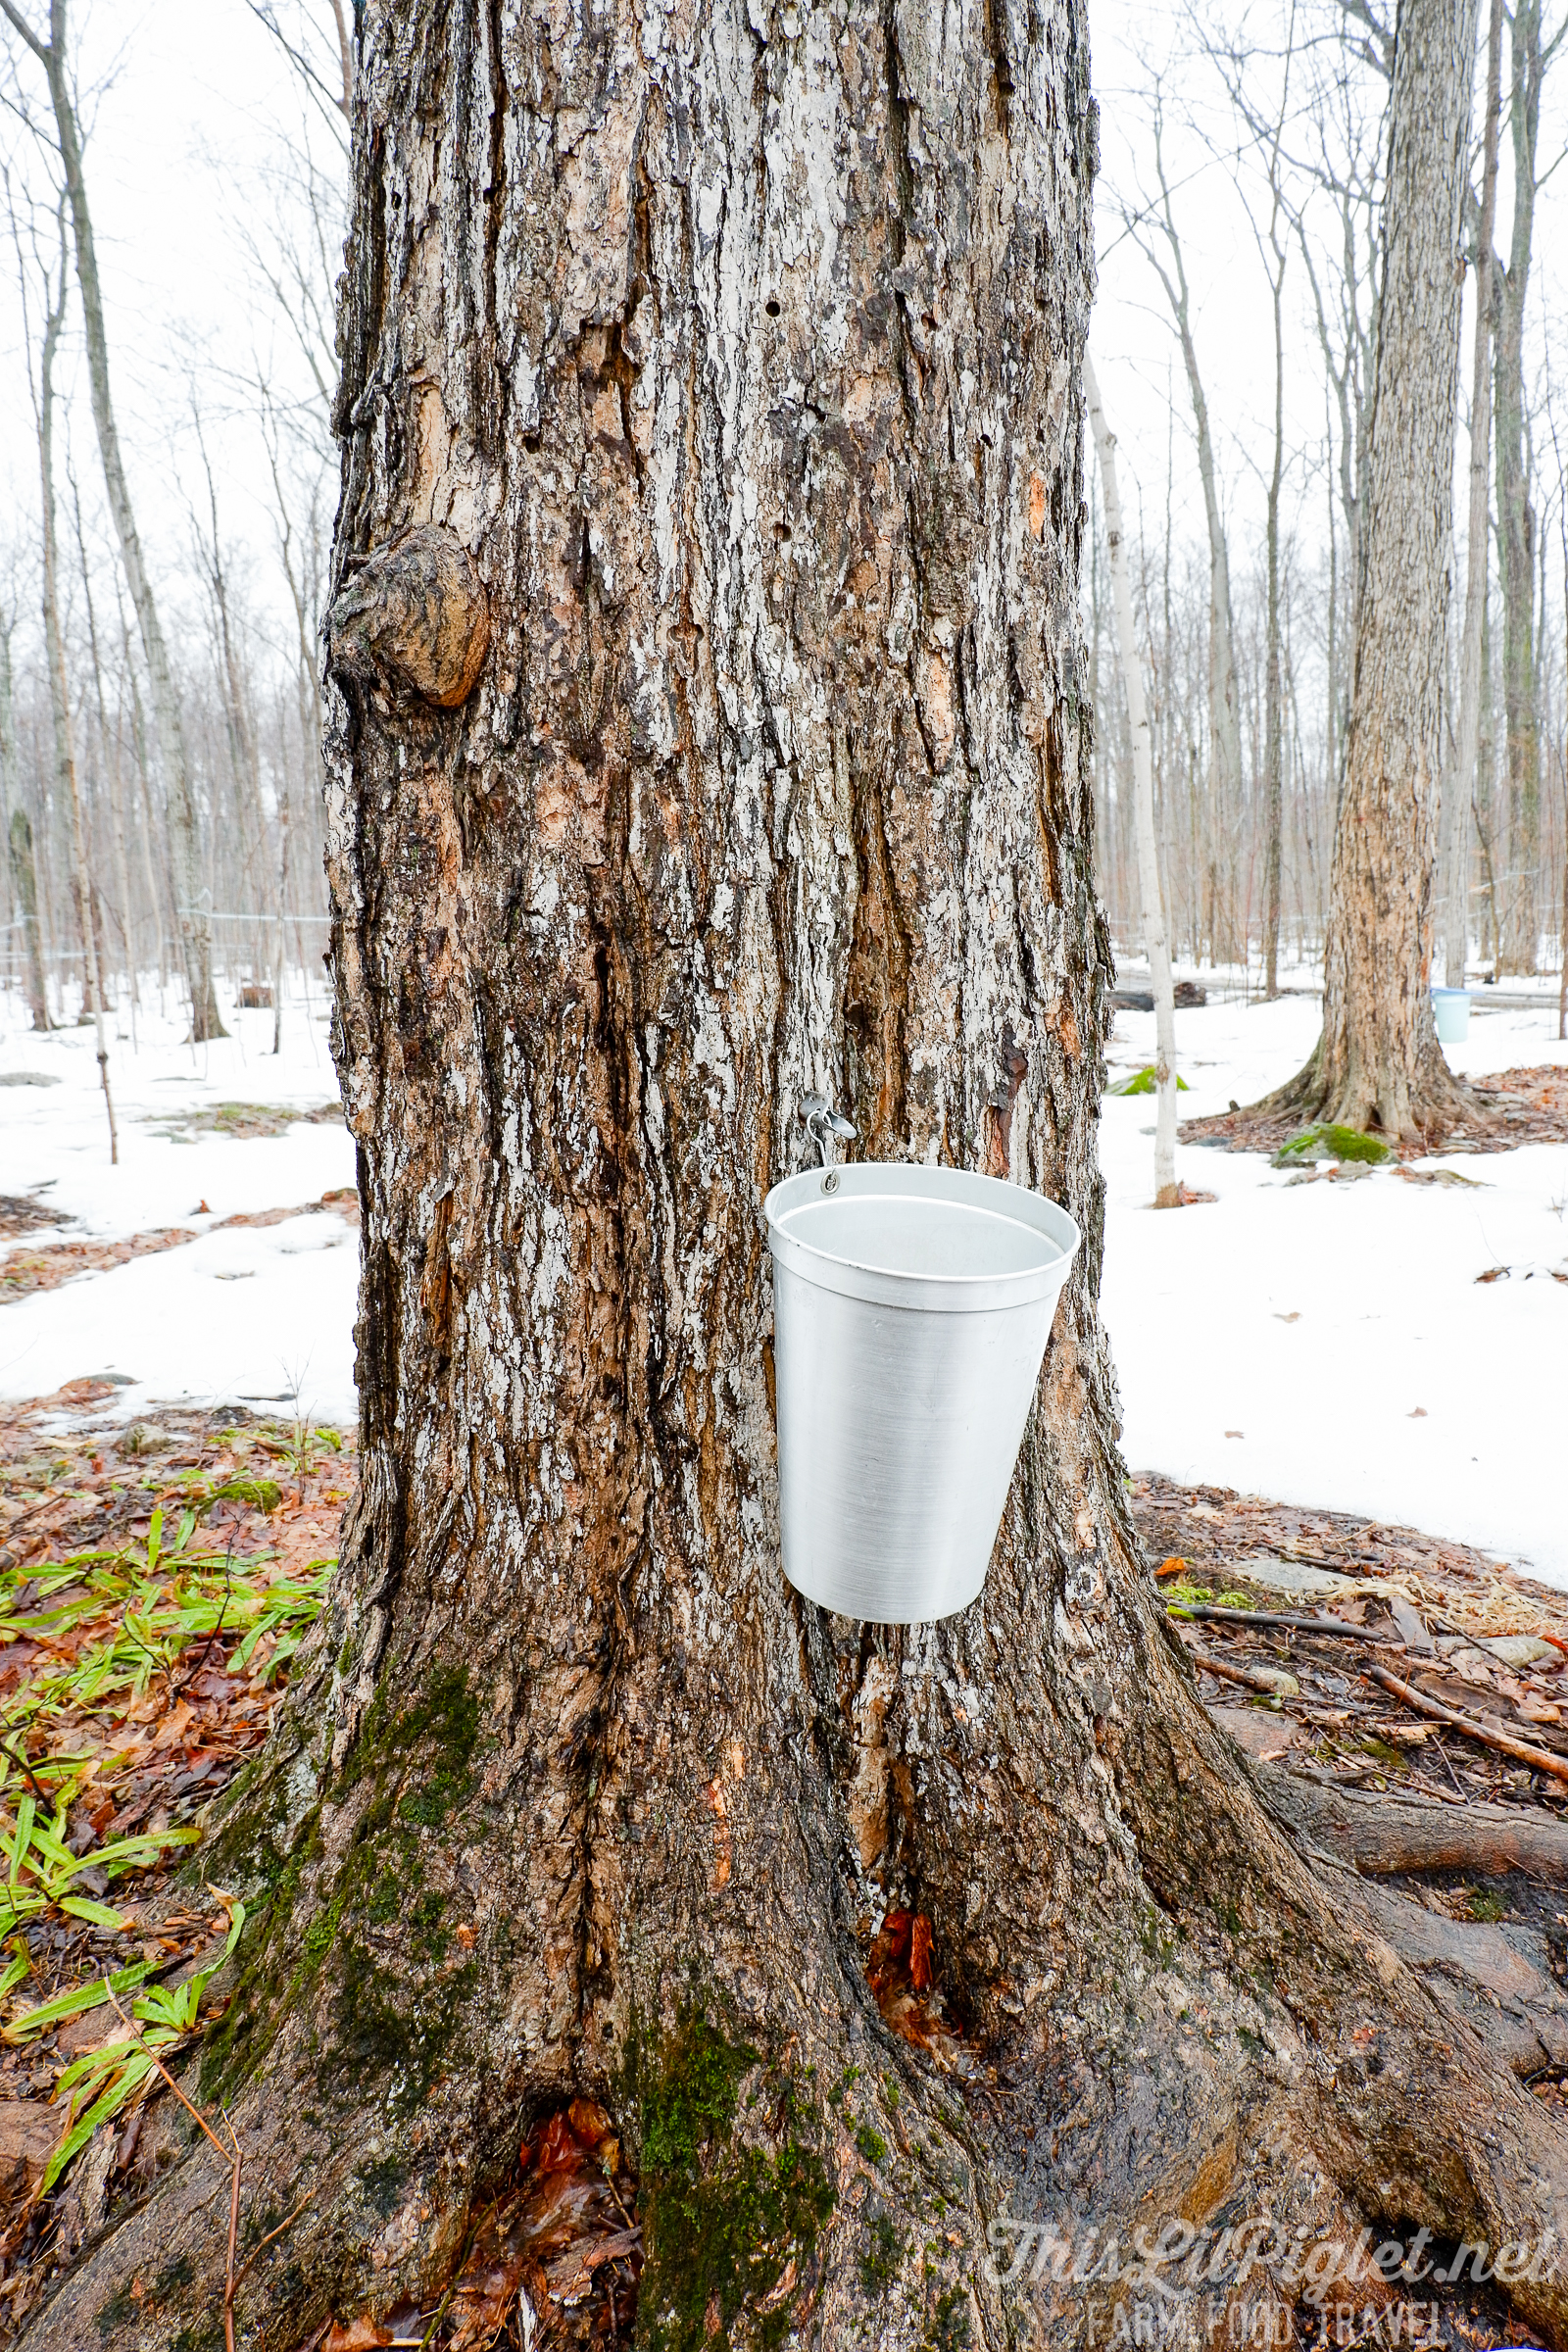 Winter Travel Bucket List: What to Do - Shaws Syrup Bush Tapping Maple Trees for Maple Syrup // thislilpiglet.net